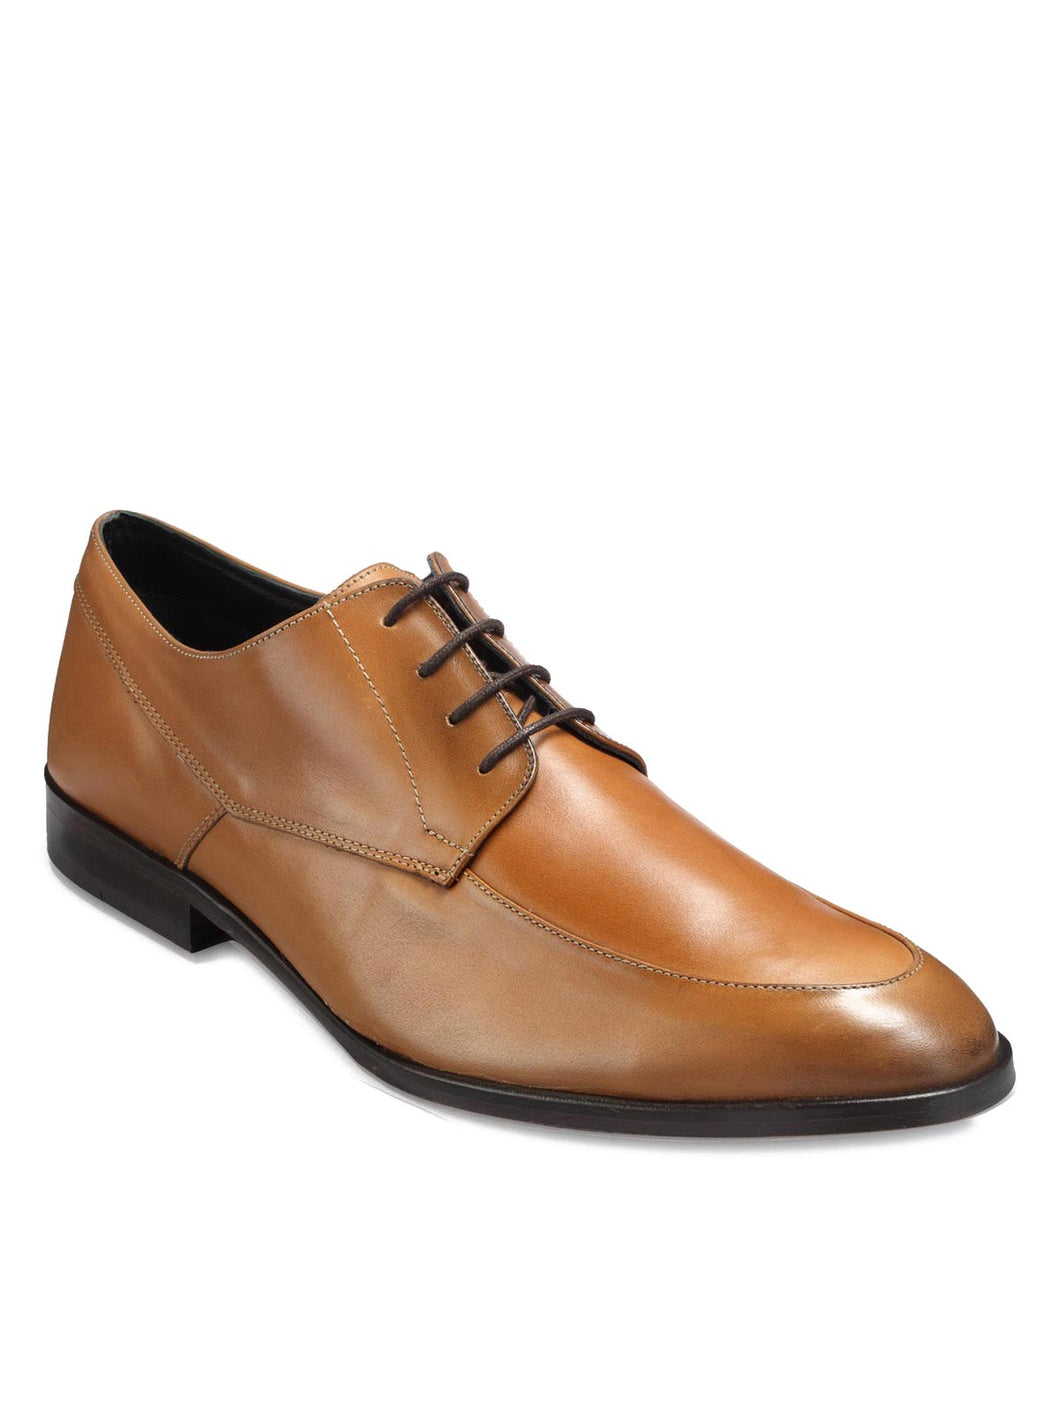 Teakwood Genuine Leather Derby Shoes